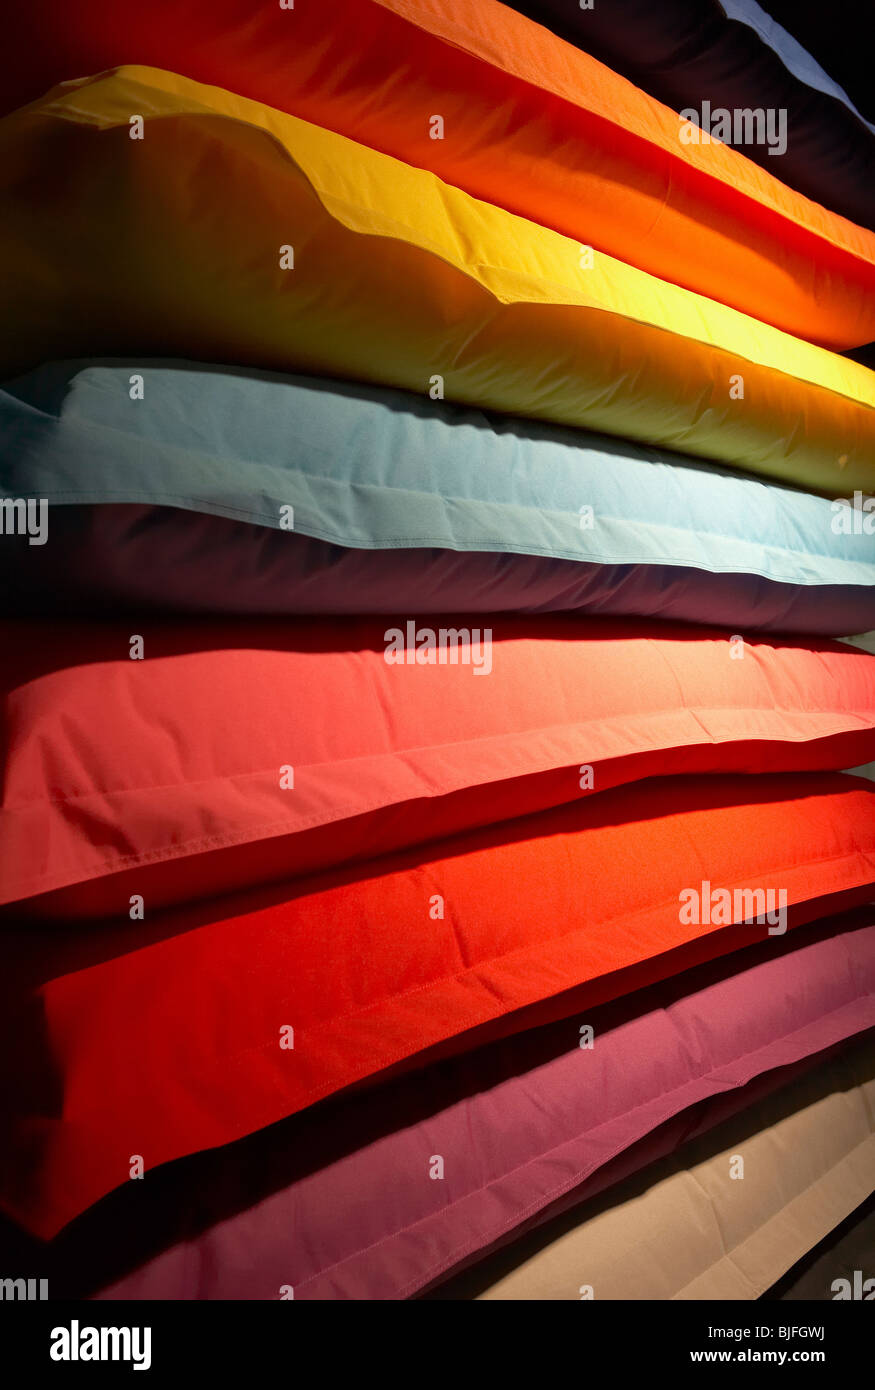 Pile of colorful thick mattresses - Stock Image